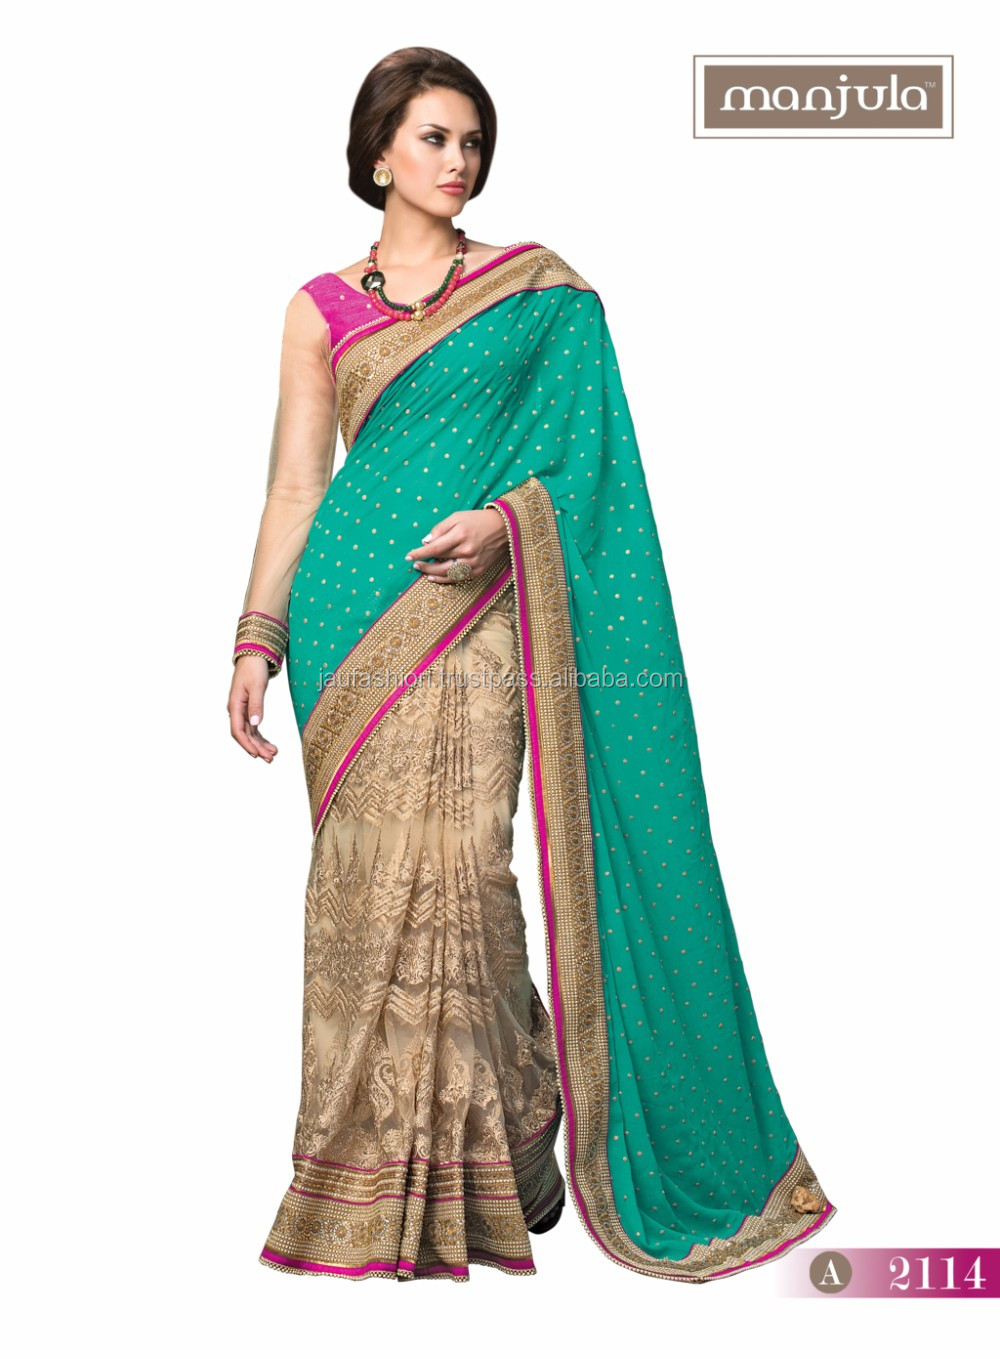 Wholesale Dress Material Manufacturers In India